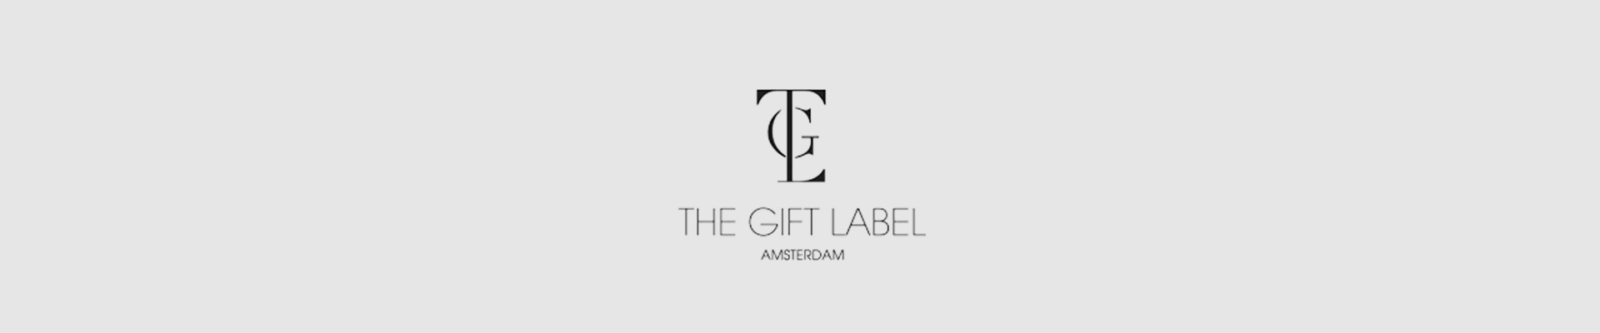 banner the gift label